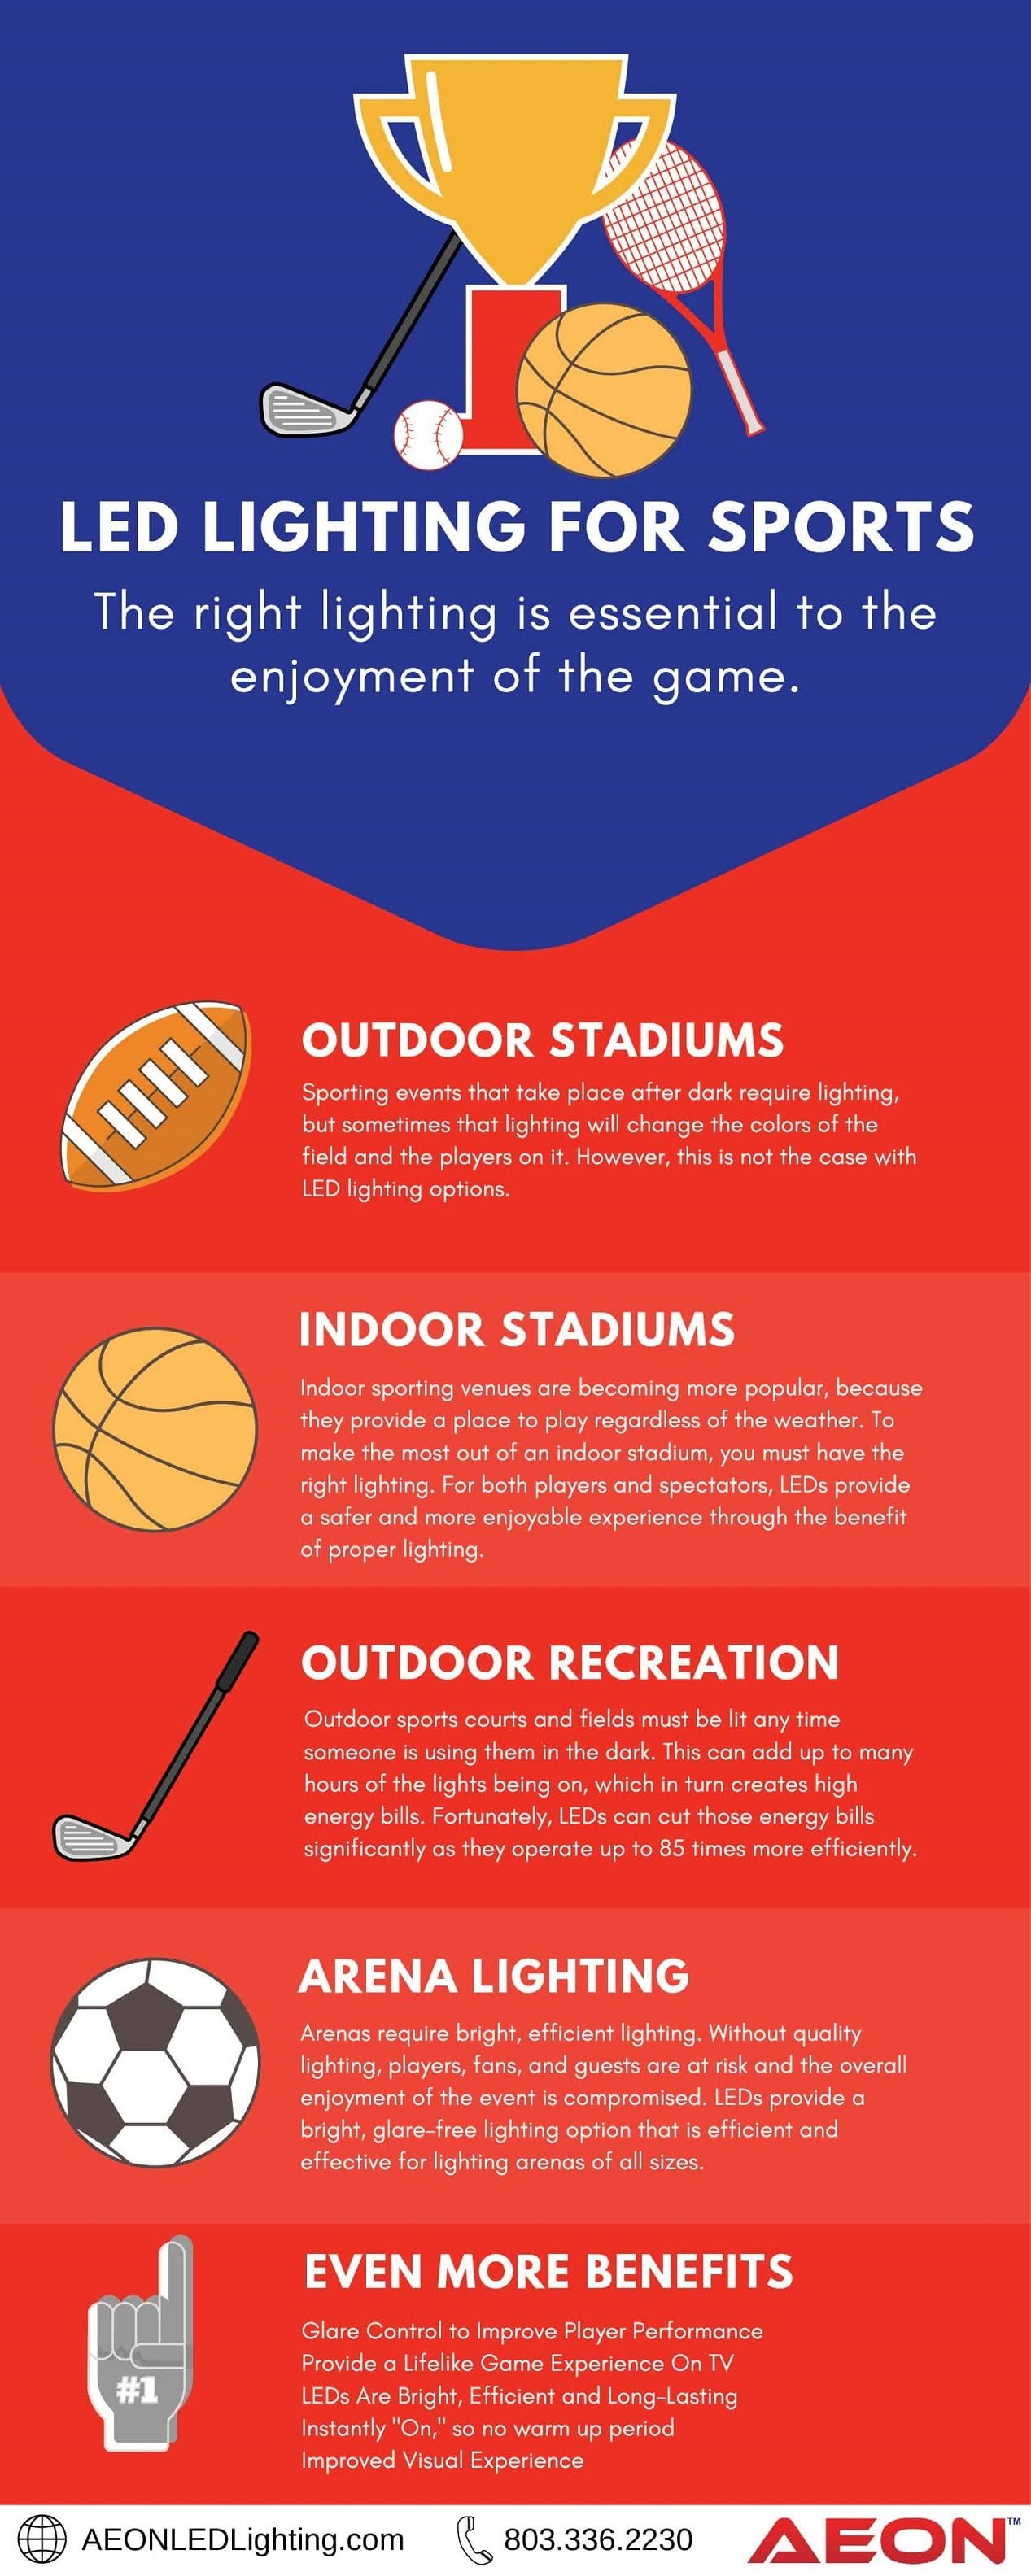 LED Lighting for Sport #infographic